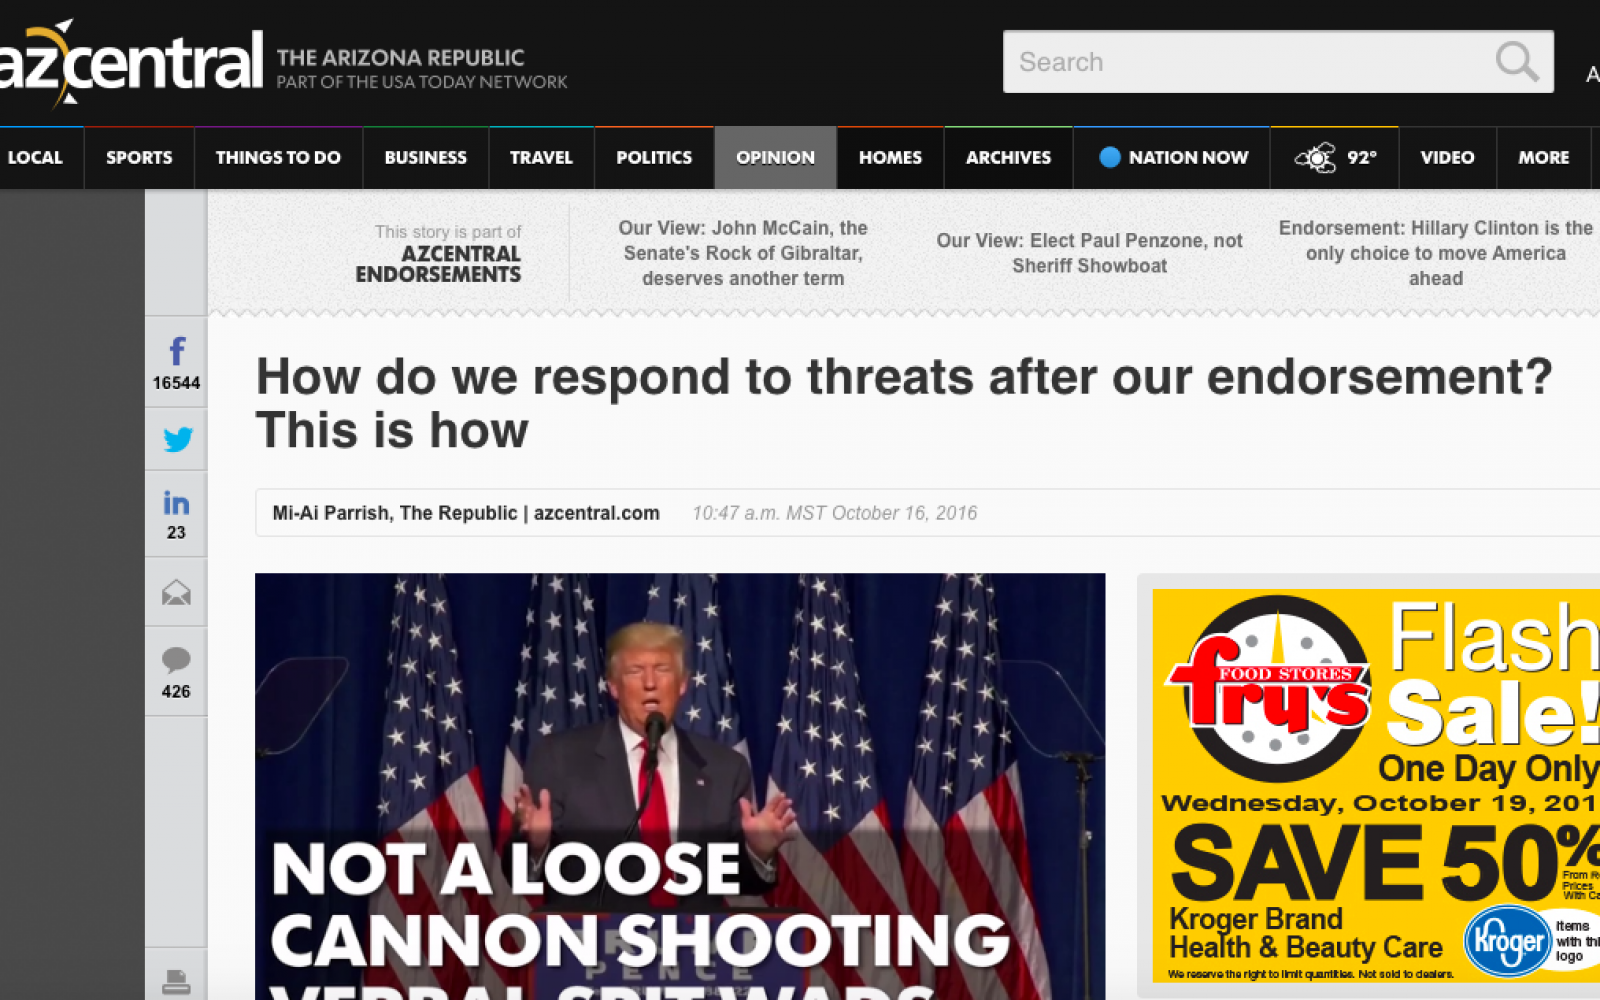 'The Arizona Republic' Passionately Responds To Threats Of Violence After Their Endorsement Of Hillary Clinton